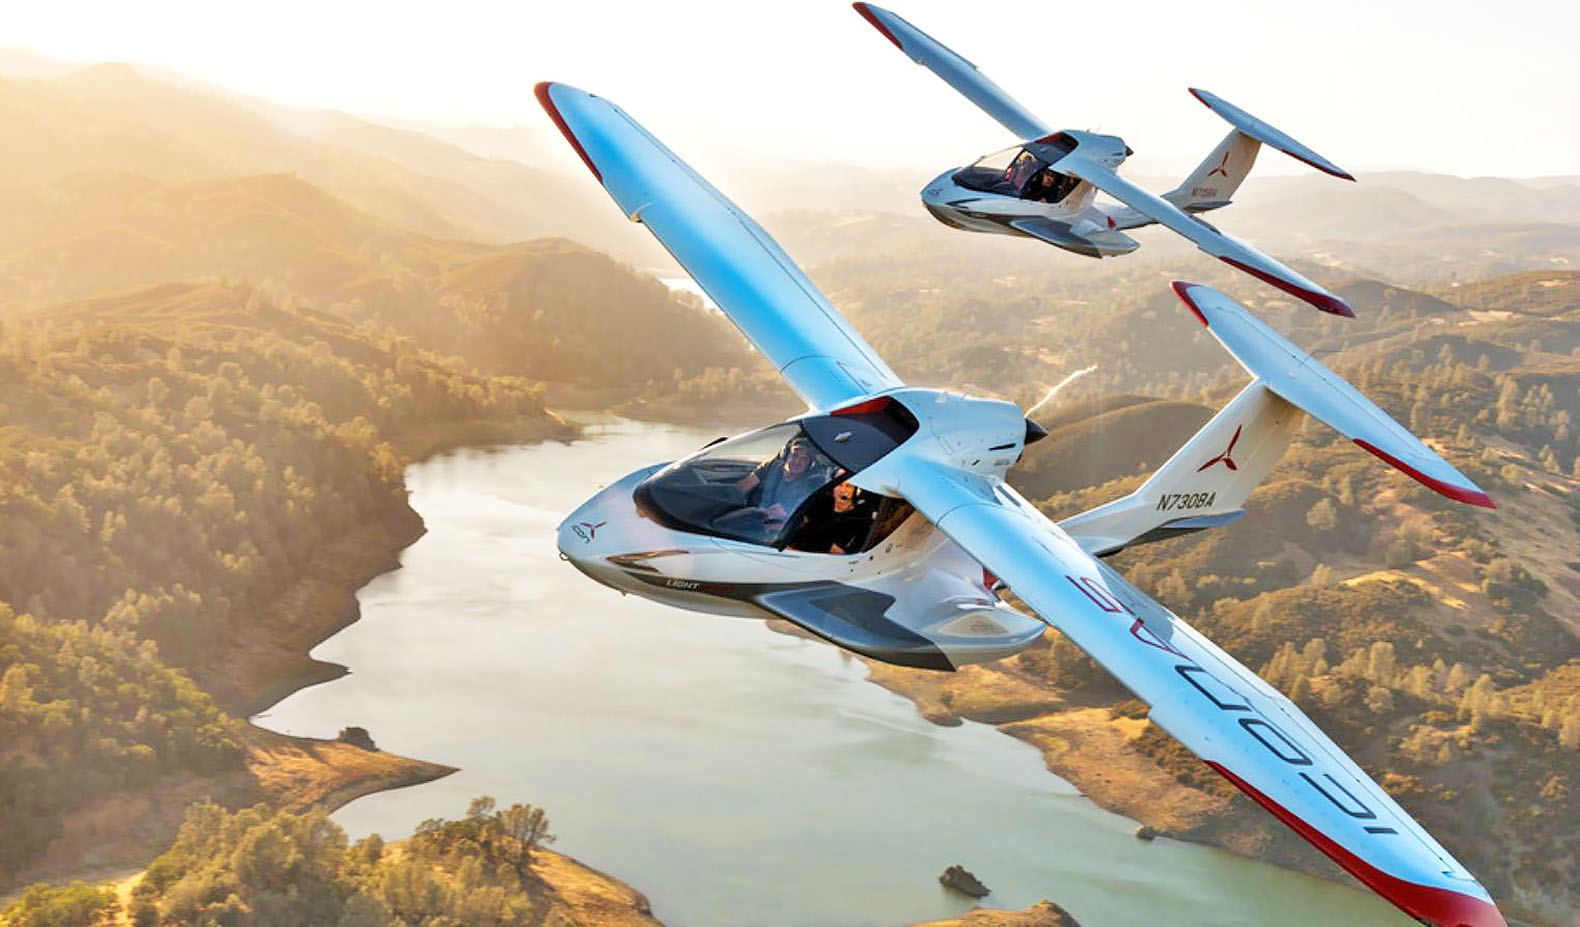 Amphibious airplane's wings fold up to fit in a camper